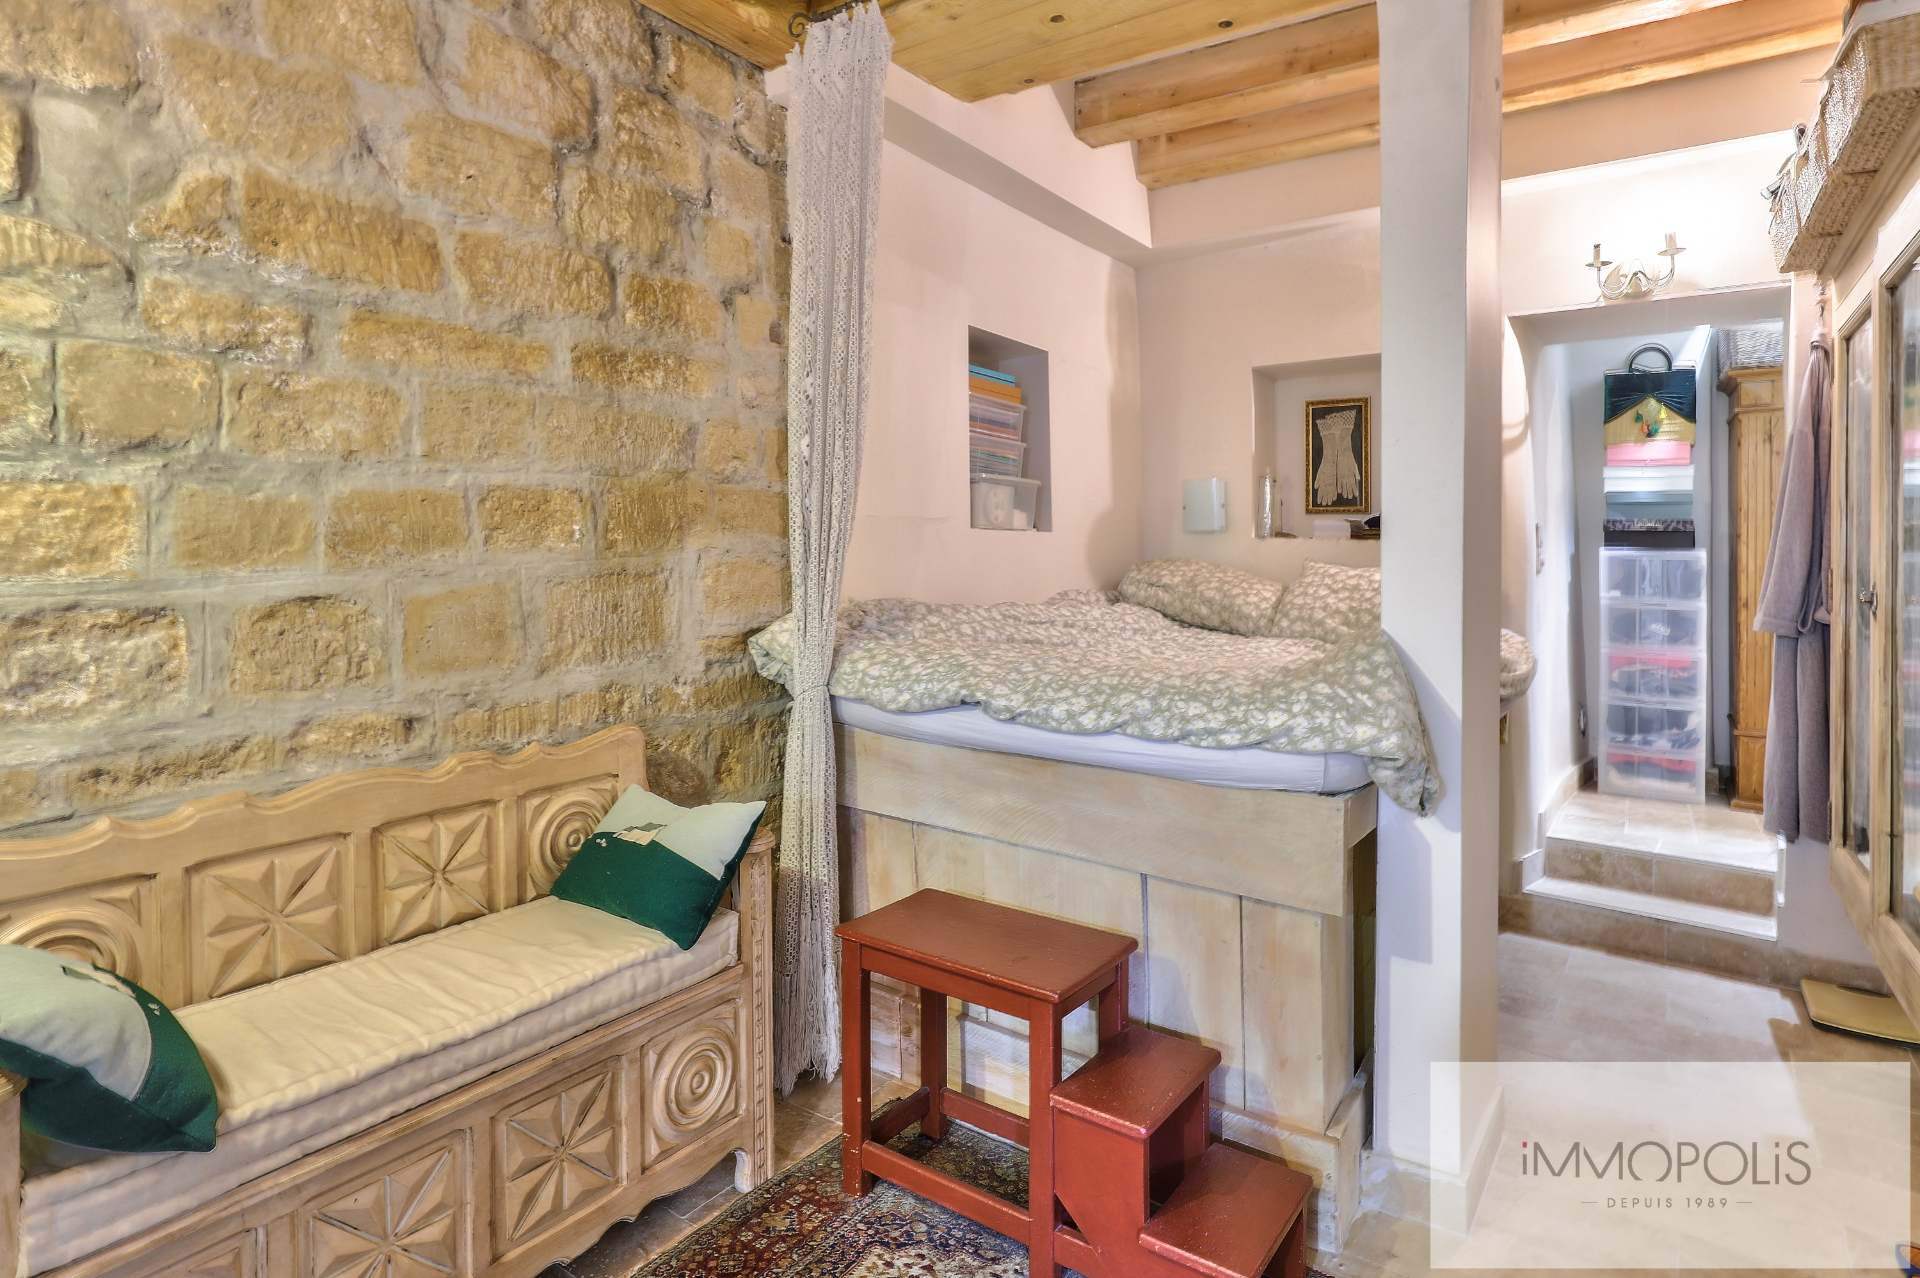 Montmartre, rue Gabrielle, beautiful 2 rooms completely renovated with stones, bricks and exposed beams: like a house! 7